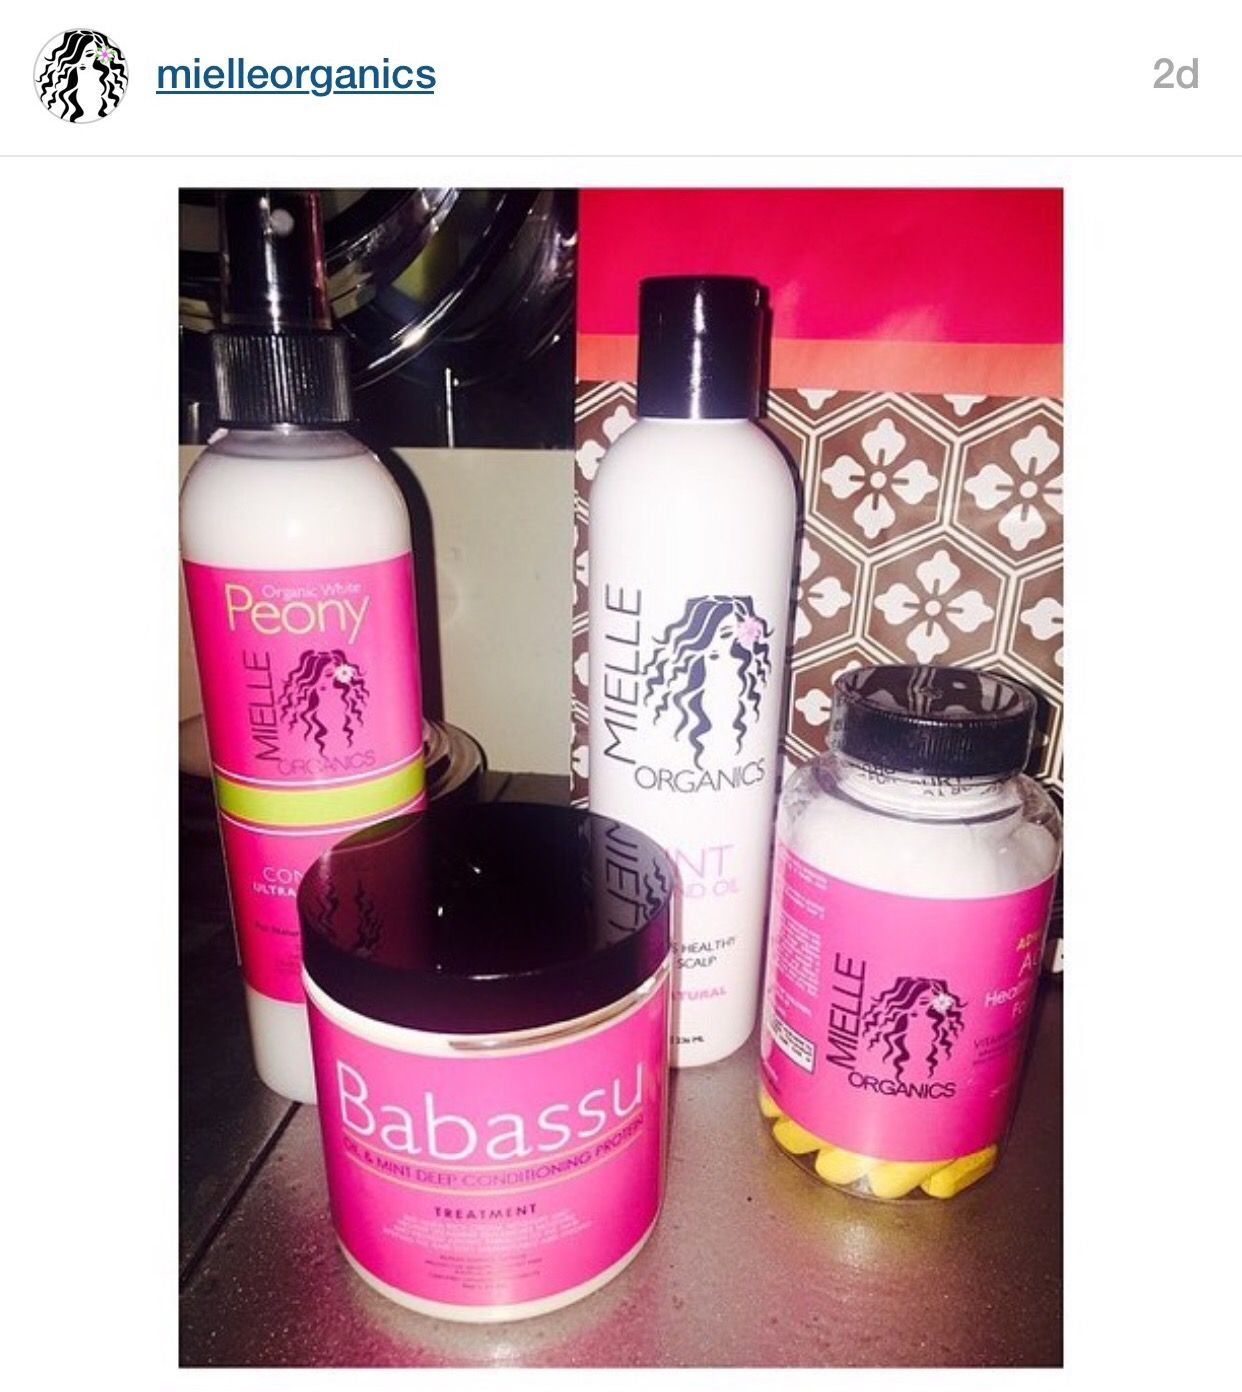 Mielle Organics products...check them out via Instagram